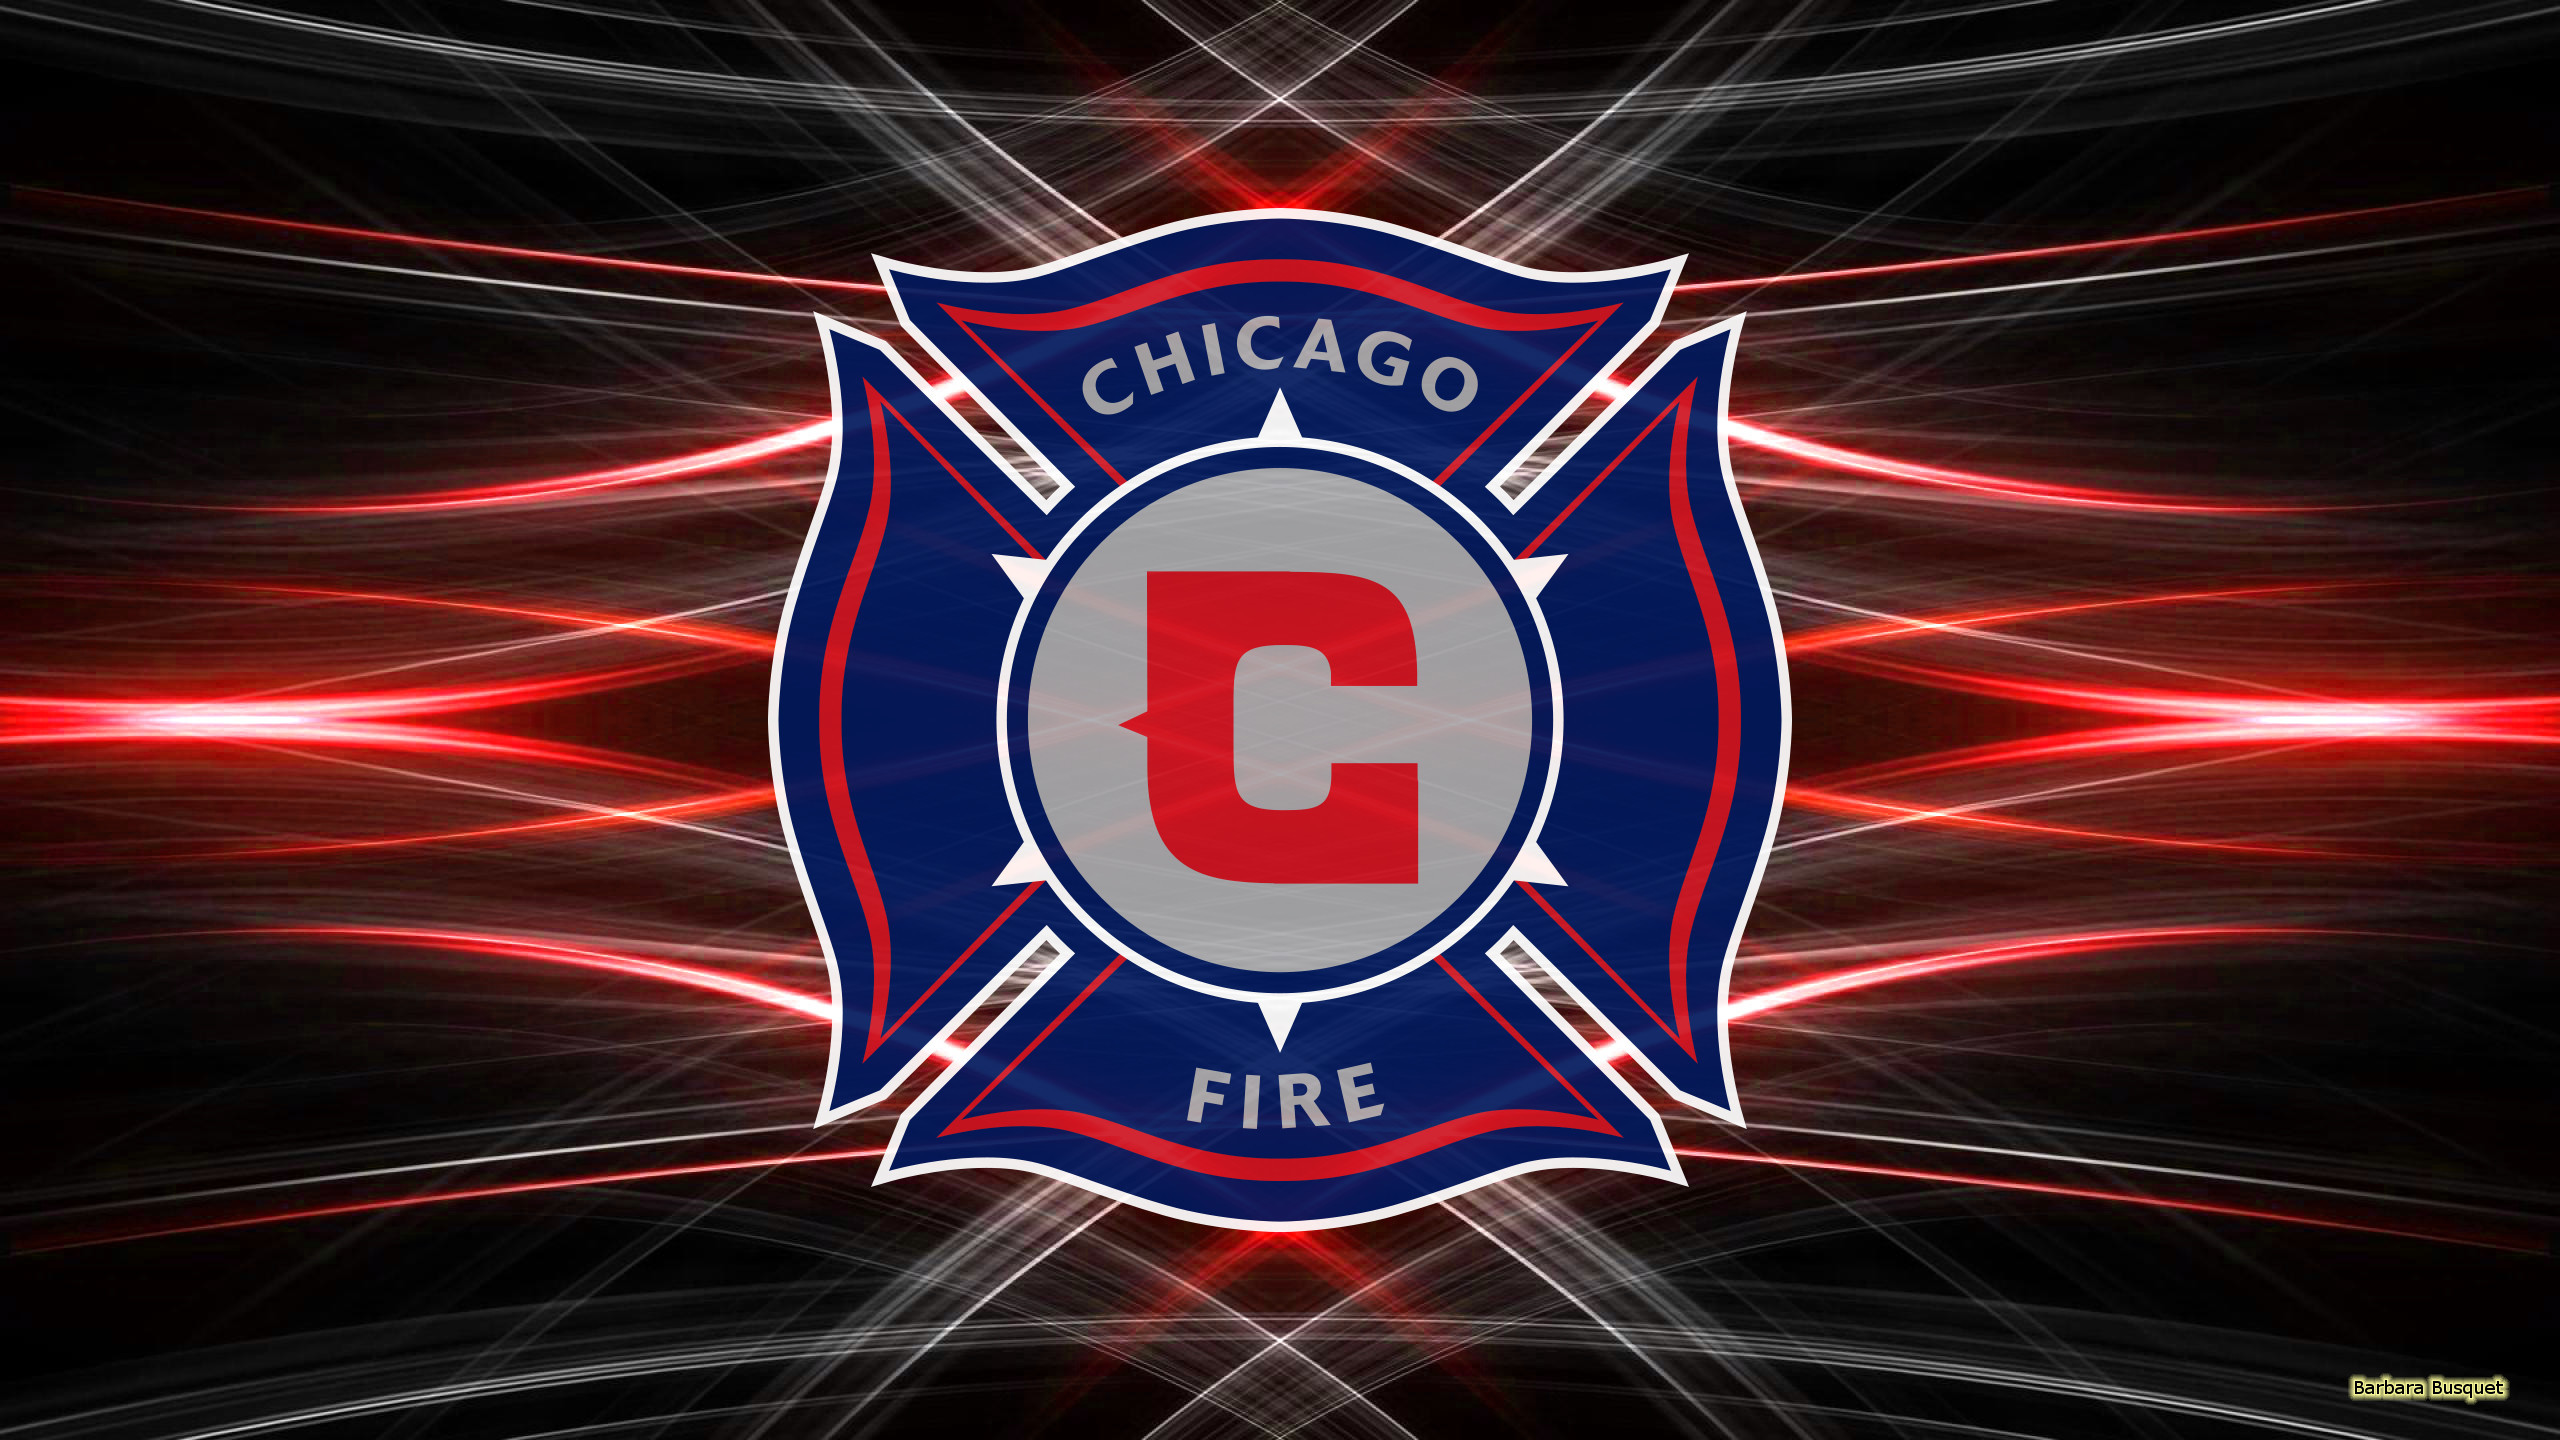 Chicago Fire Soccer Club Wallpapers 64 Images